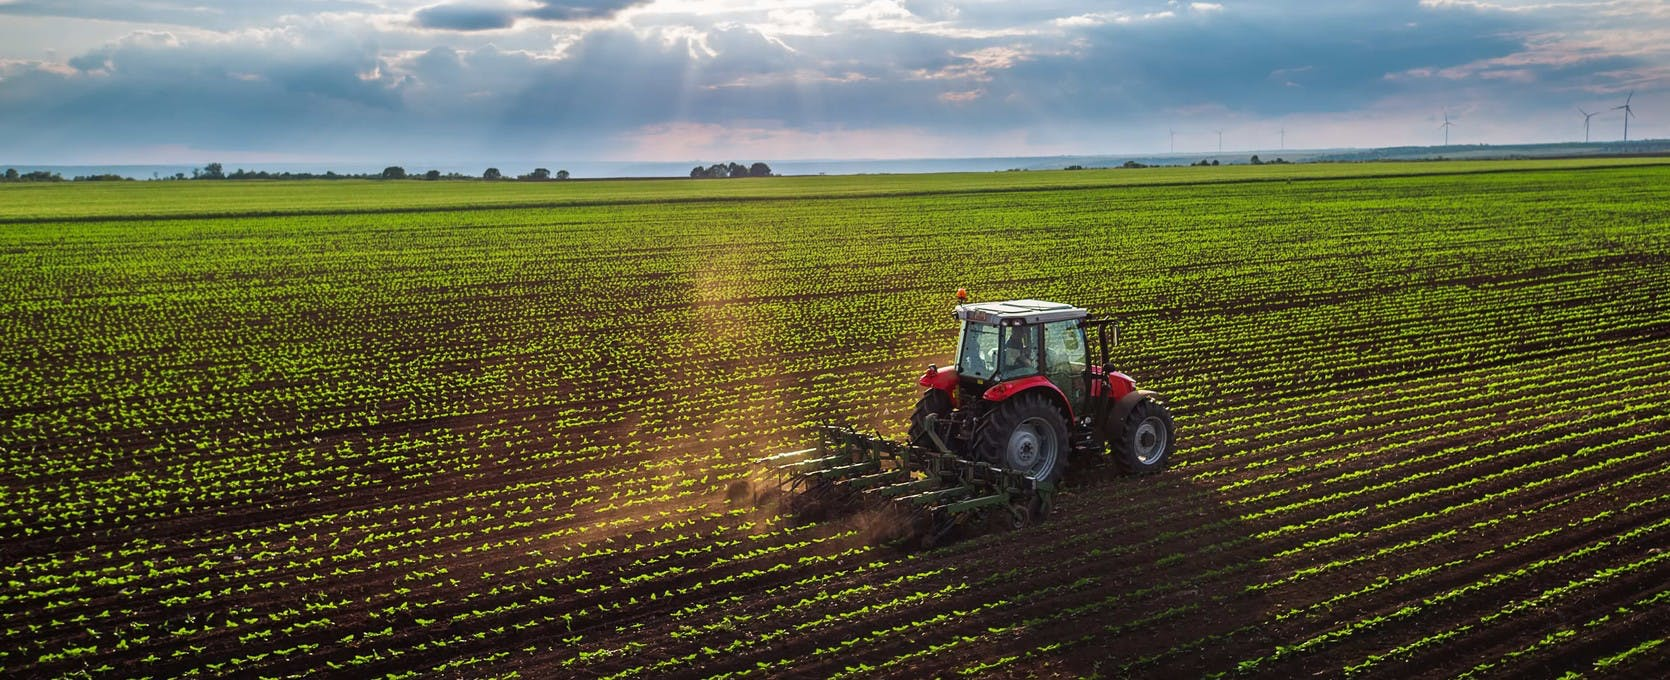 Tractor cultivating field at the heart of the agribusiness industry